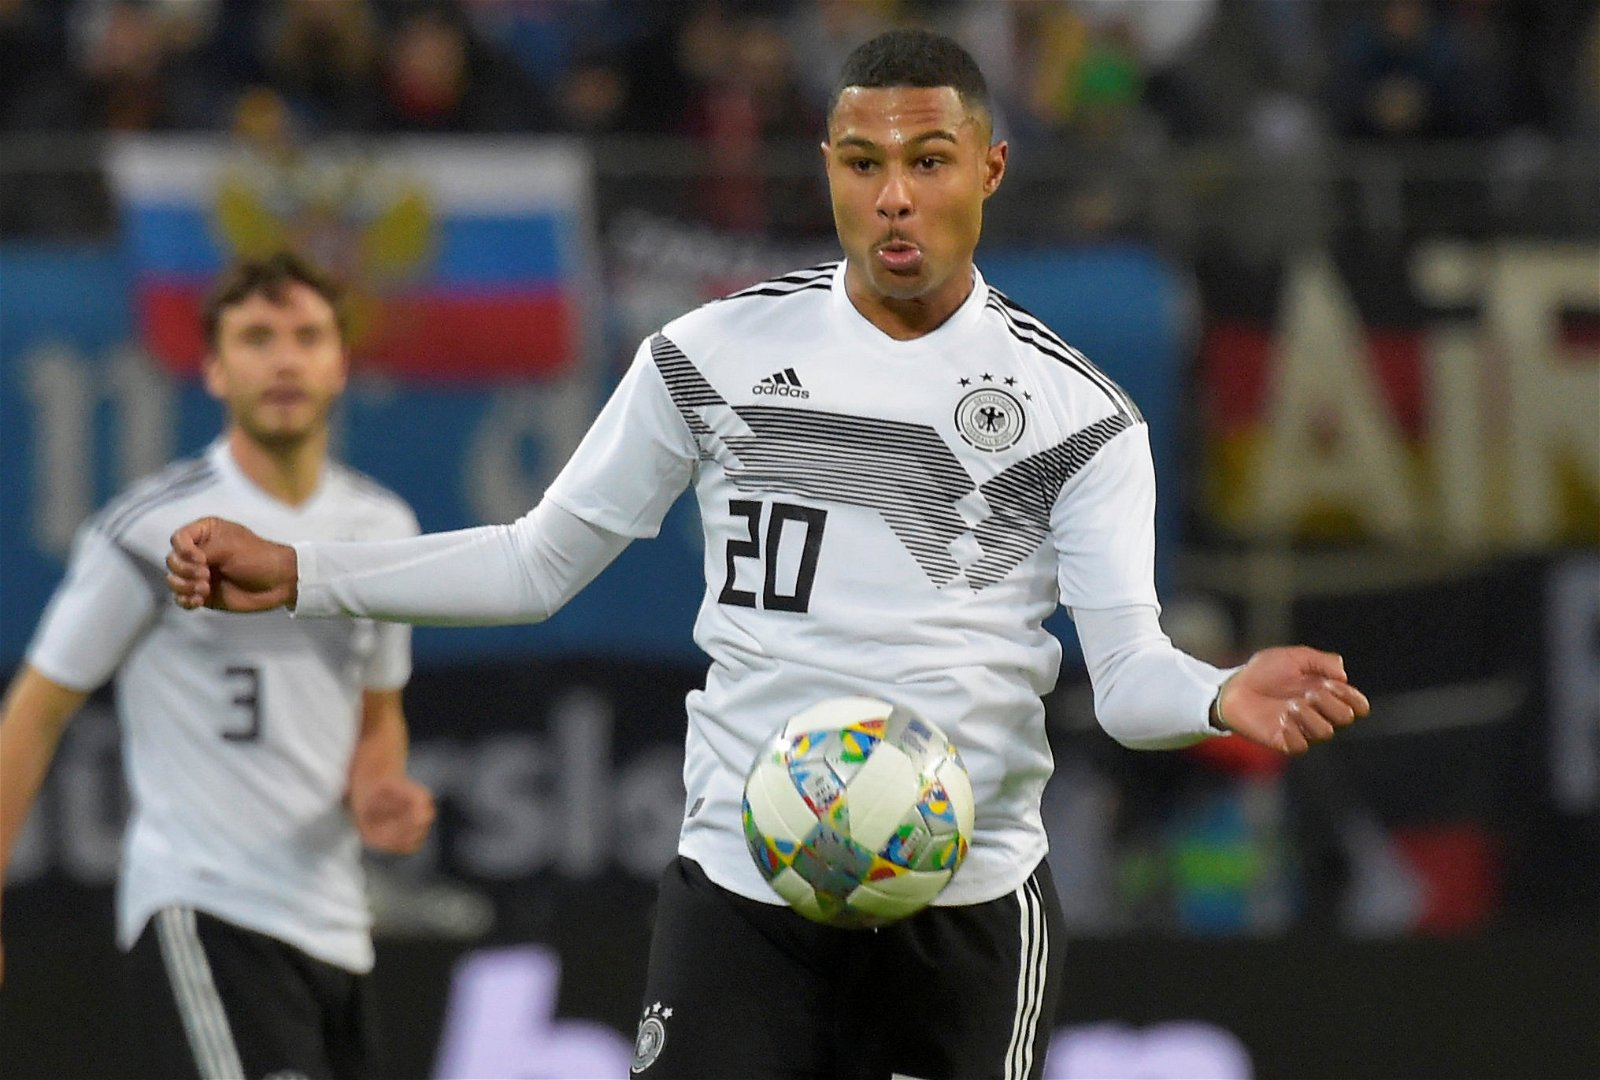 Germany Serge Gnabry - Significant Arsenal appointment will ensure Reiss Nelson doesn't become another Serge Gnabry